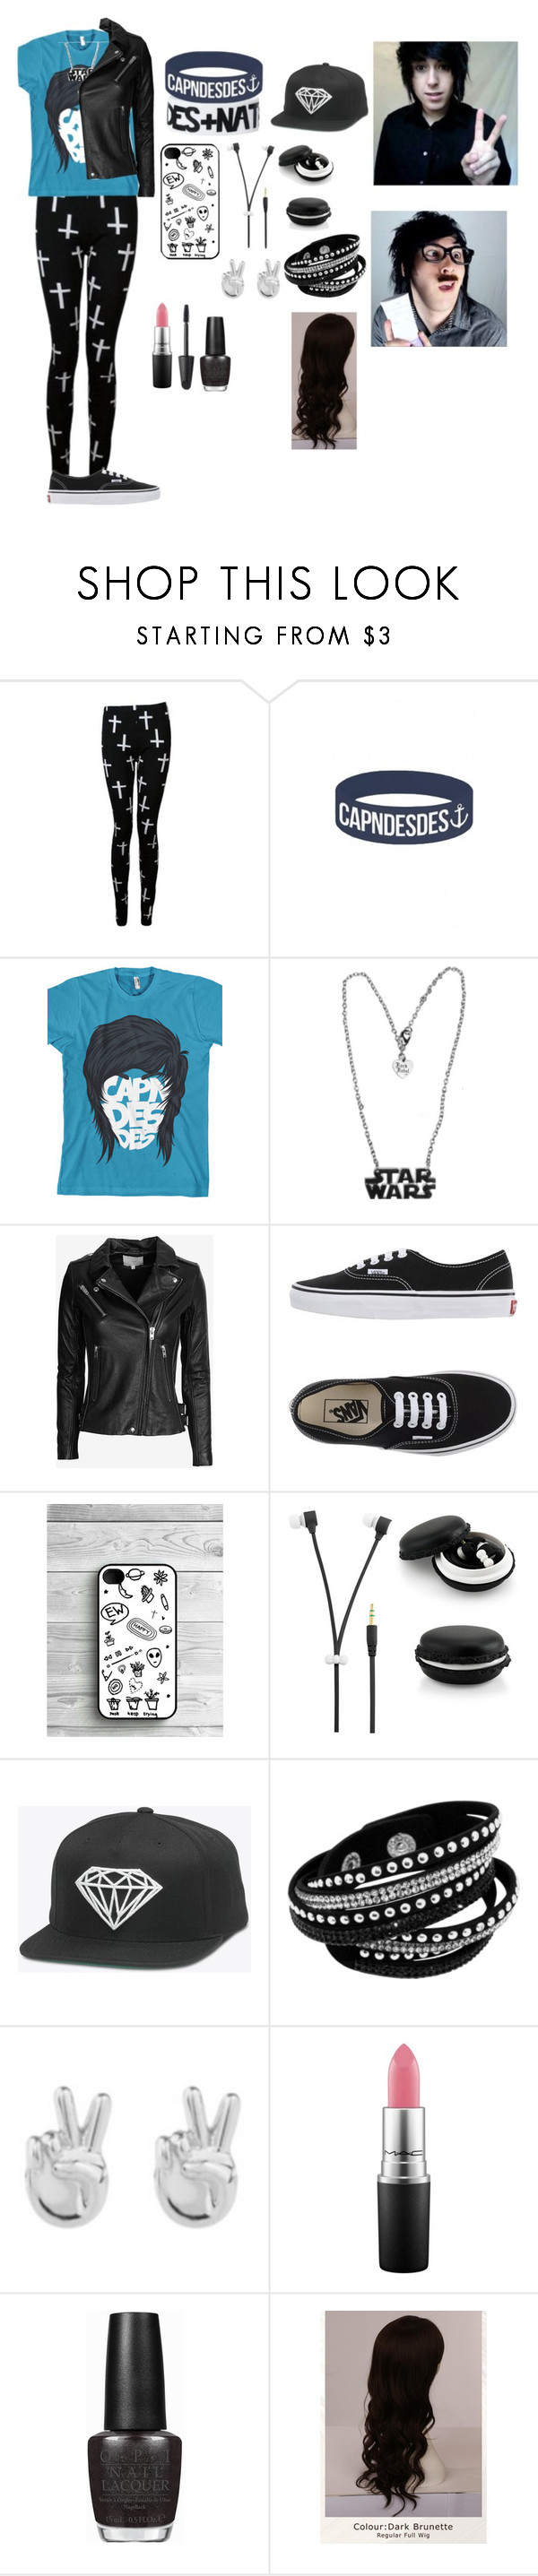 """""""Capndesdes fan"""" by gglloyd ❤ liked on Polyvore featuring IRO, Vans, Rock 'N Rose, MAC Cosmetics, Max Factor, OPI and WigYouUp"""